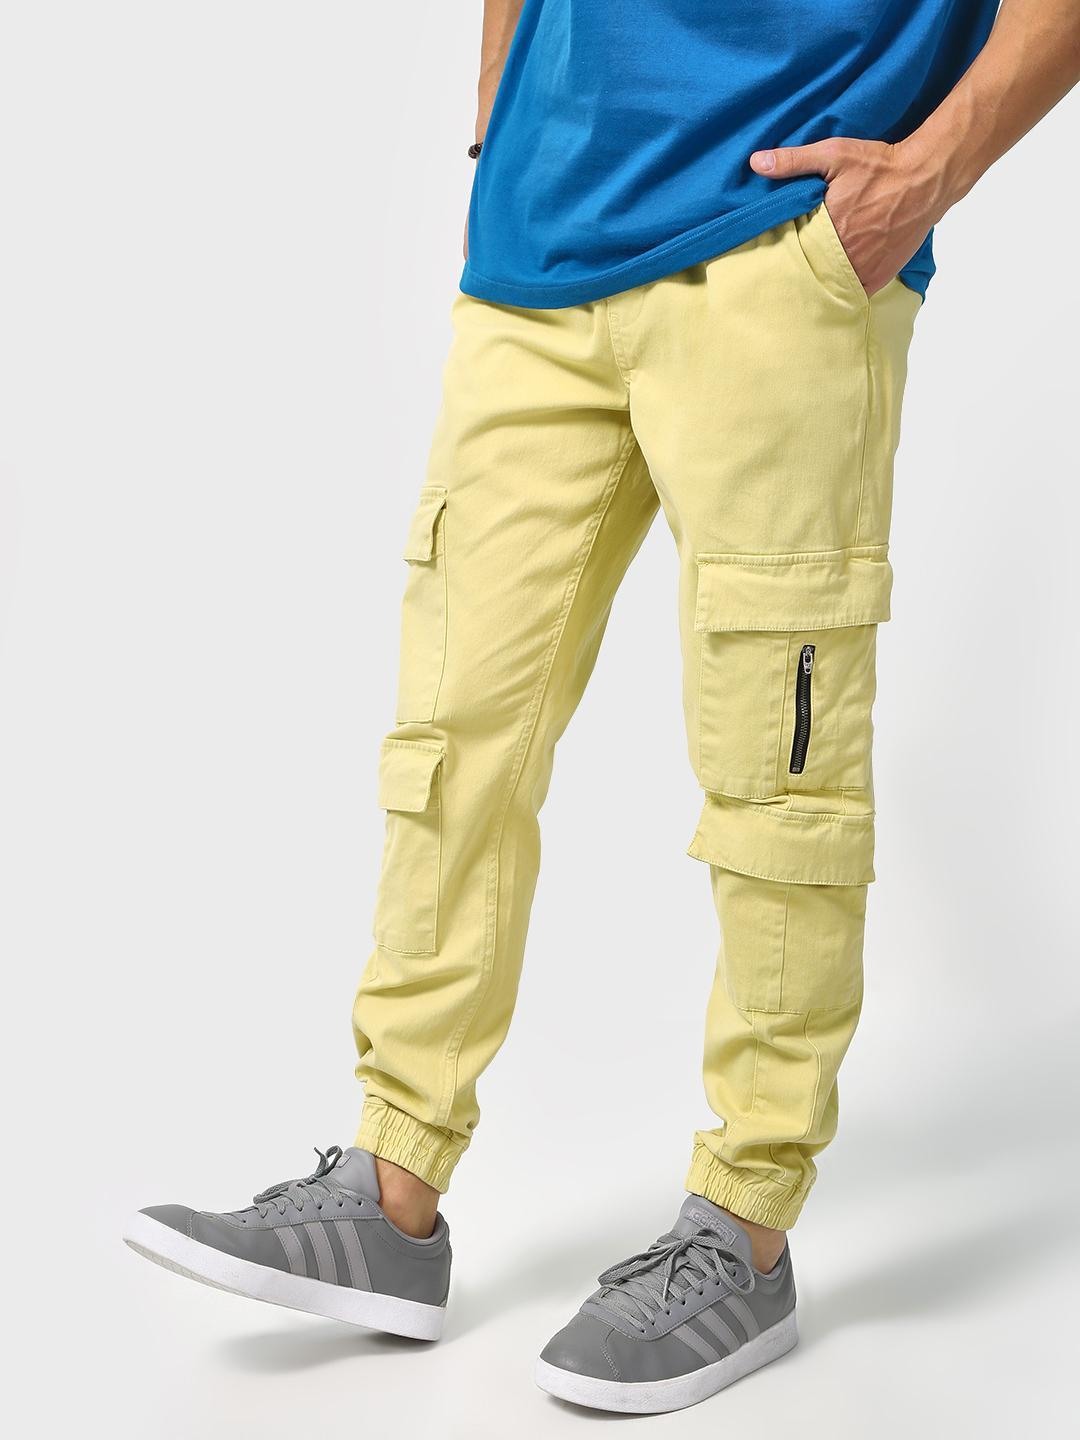 Blue Saint Pale green Cuffed Hem Utility Pocket Jog Pants 1